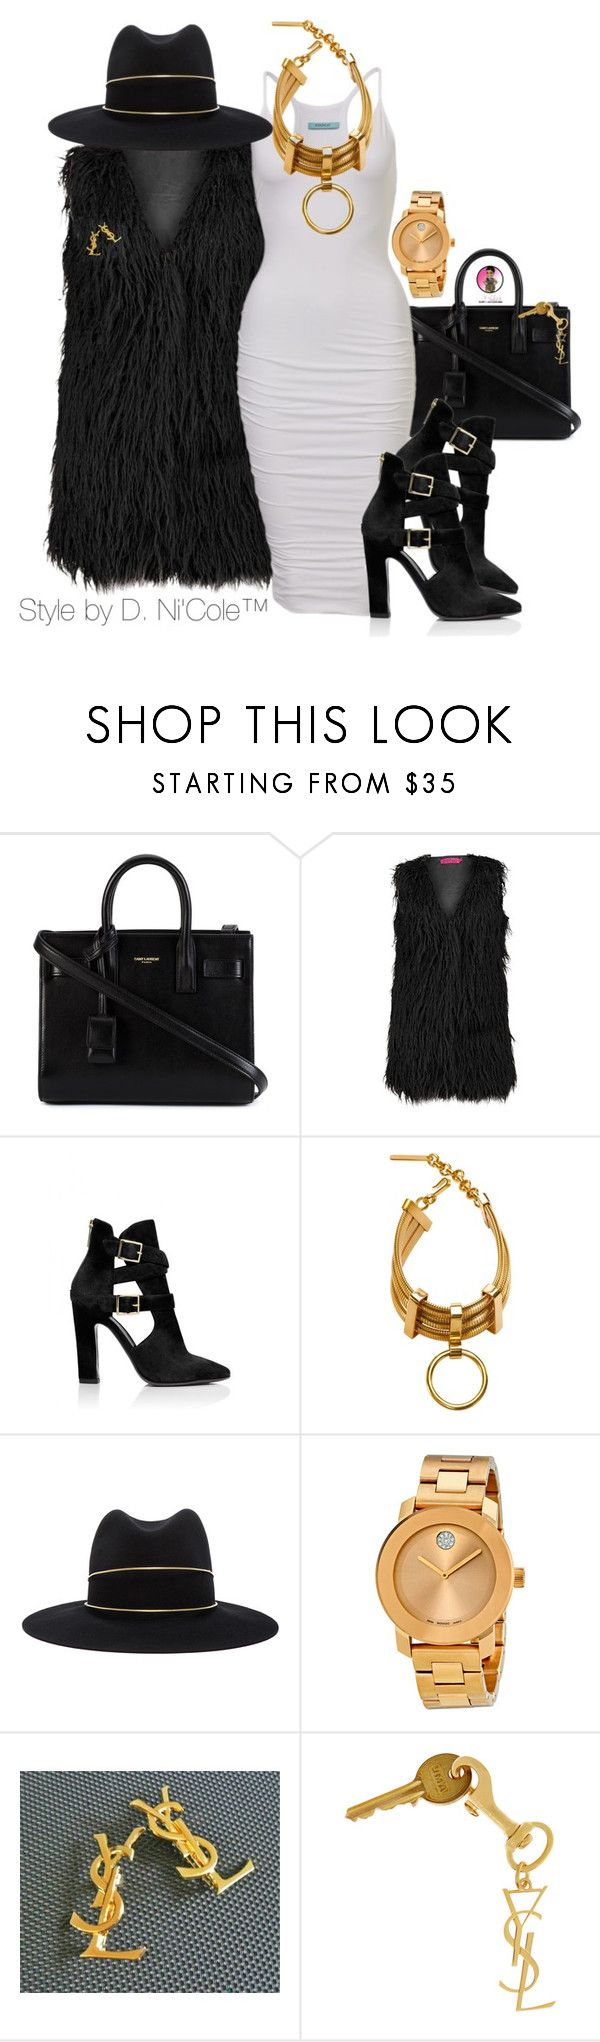 """""""Untitled #2903"""" by stylebydnicole ❤ liked on Polyvore featuring Yves Saint Laurent, Boohoo, Tamara Mellon, Scott Wilson, Janessa Leone and Movado"""